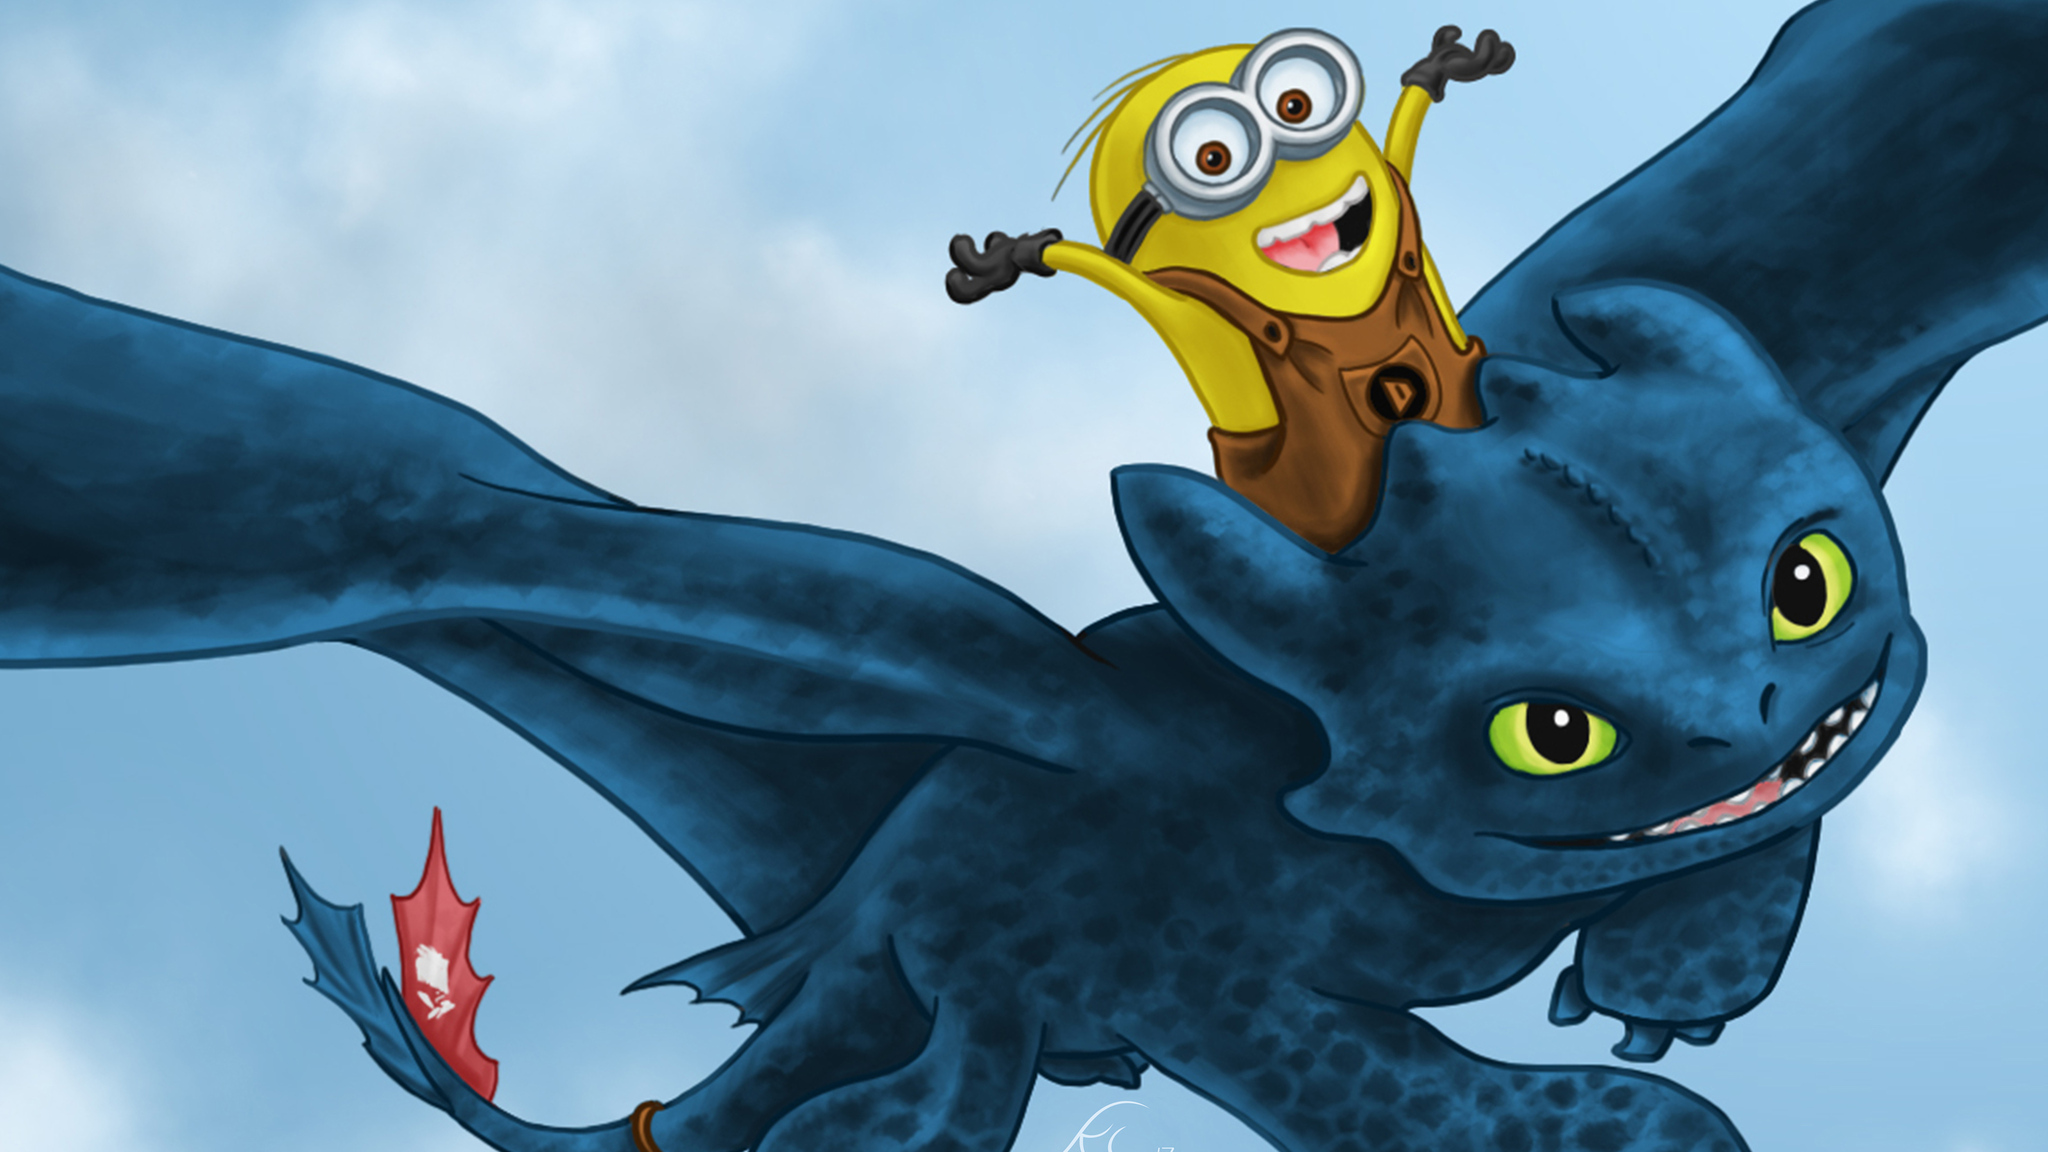 toothless-and-minion-a1.jpg